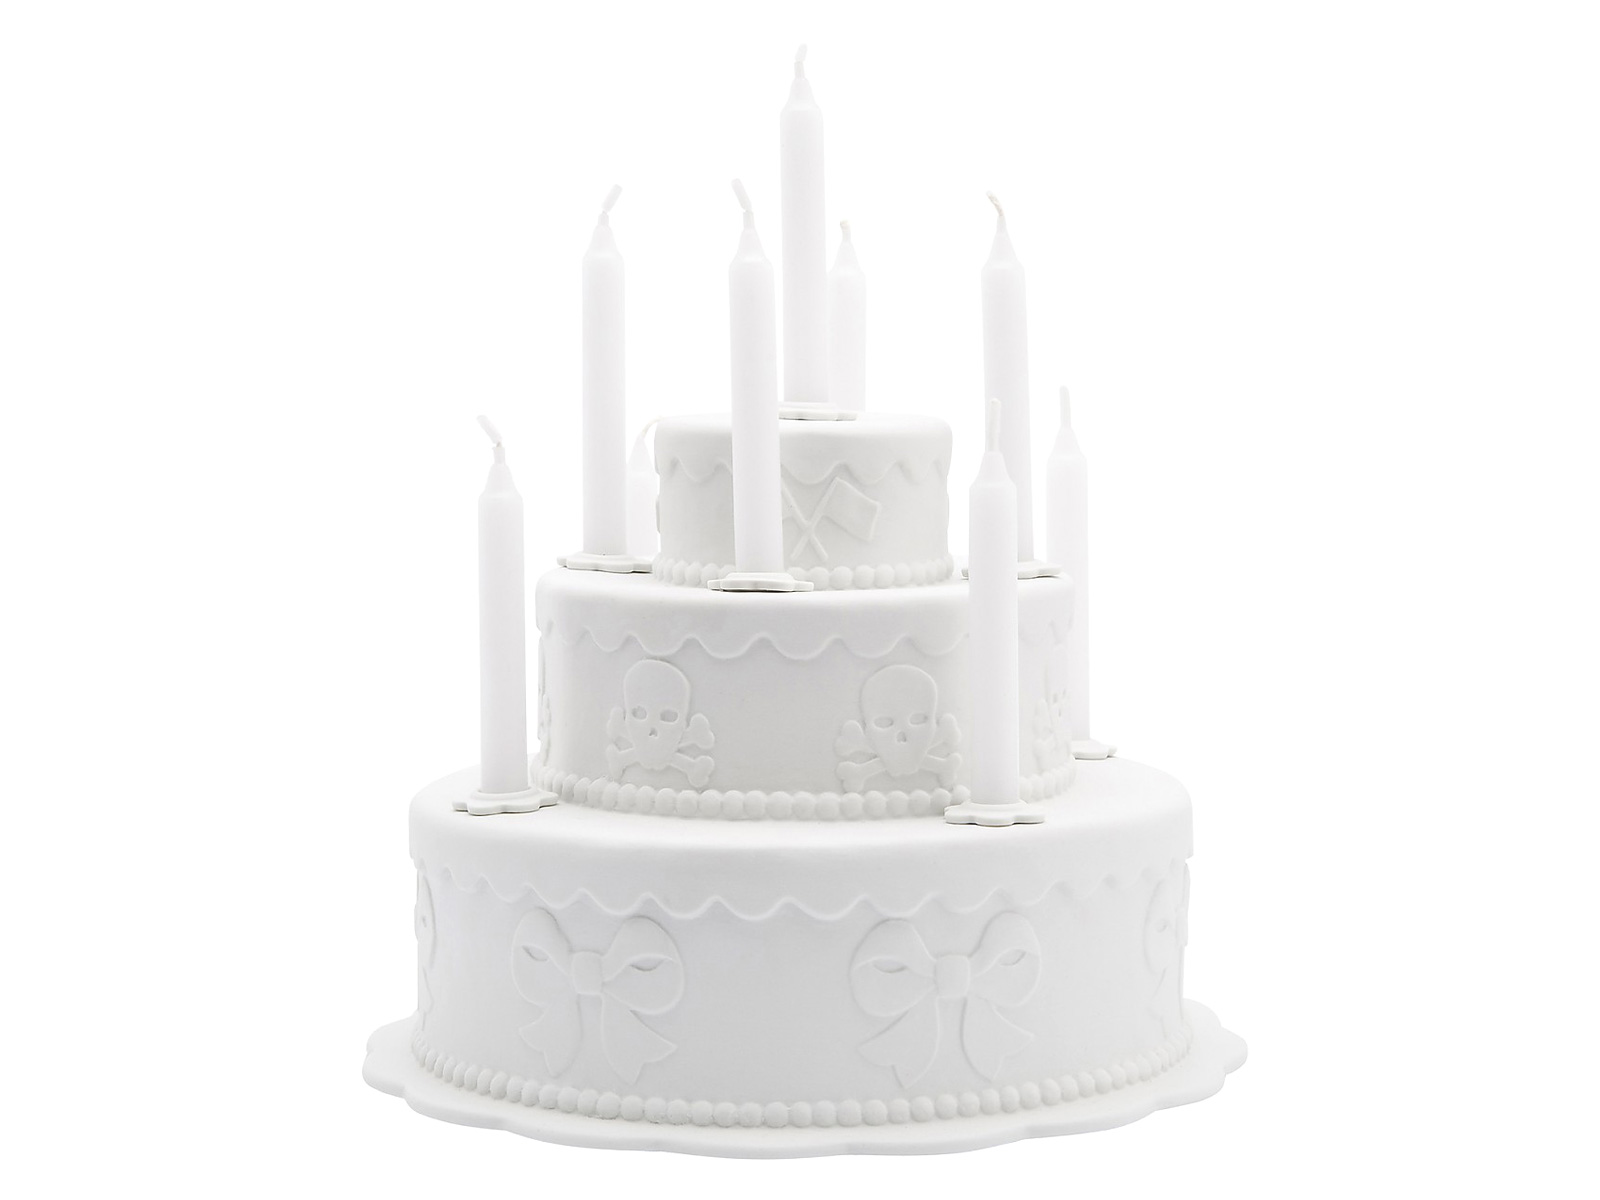 """Biscuit Tiered Cake Candleholder (2006) by Studio Job, estimated at $600–$800. In 2006, Studio Job created a collection entitled """"Biscuit,"""" consisting of nine plates and five objects, for Royal Tichelaar Makkum in the Netherlands. Produced using an old press, a machine that is able to work in relief in greater depth, this gleaming white tiered cake candleholder features rich relief decorations characteristic of Studio Job.  Photo 1 of 10 in Design Guru Murray Moss Launches an Auction With Paddle8"""